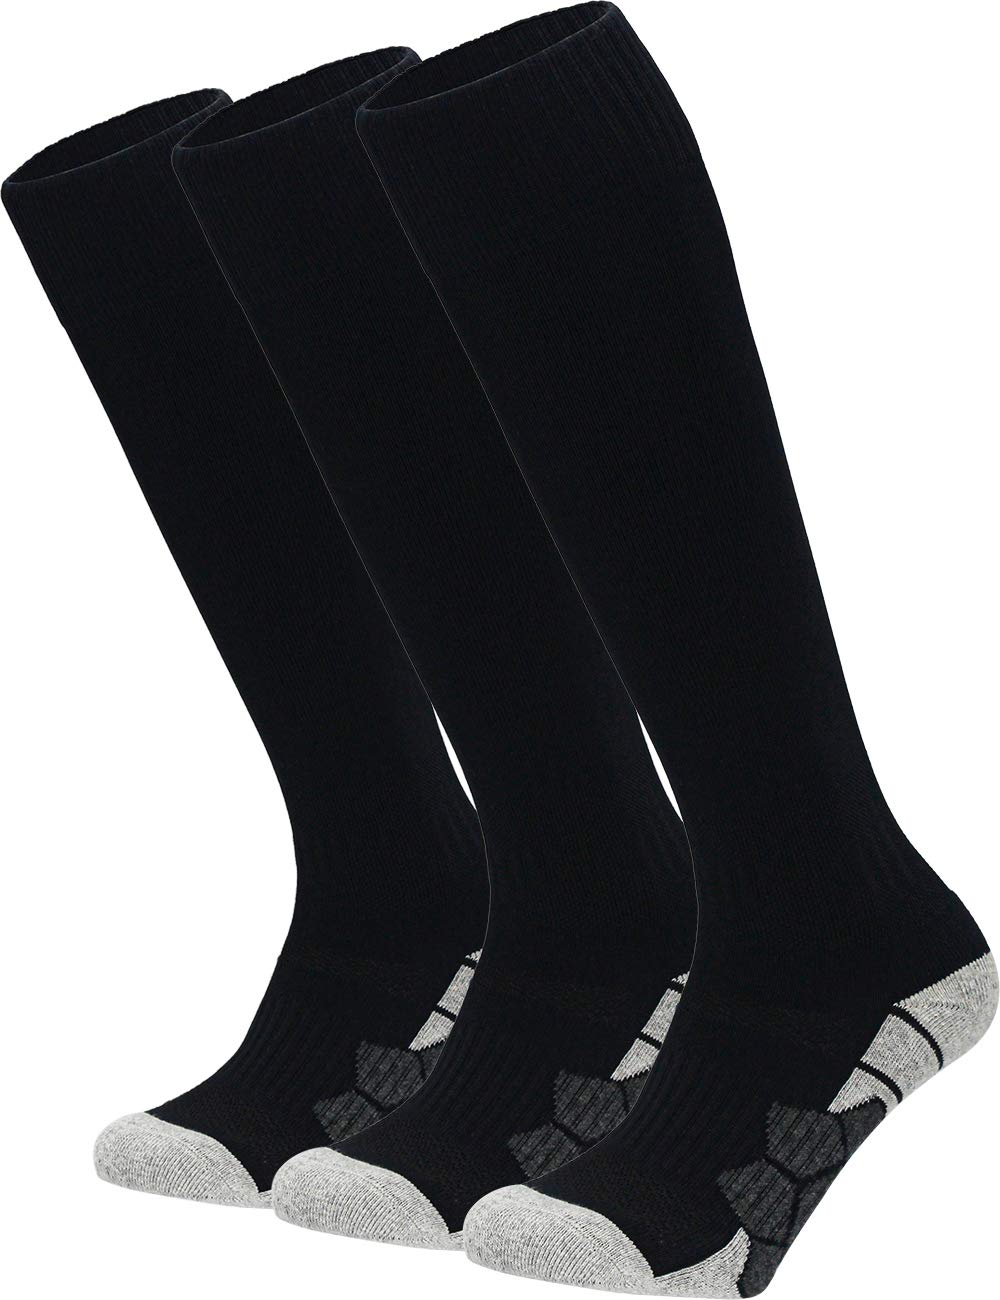 Youth Kids Adult Knee High Cotton Soccer Socks Boys Girls Parent-Child Outdoor Active Long Towel Bottom Socks, 3-Pair Black, Size M (Kids 7C-10C / Youth 5Y-7Y / W 6-10 / M 6-8) by APTESOL